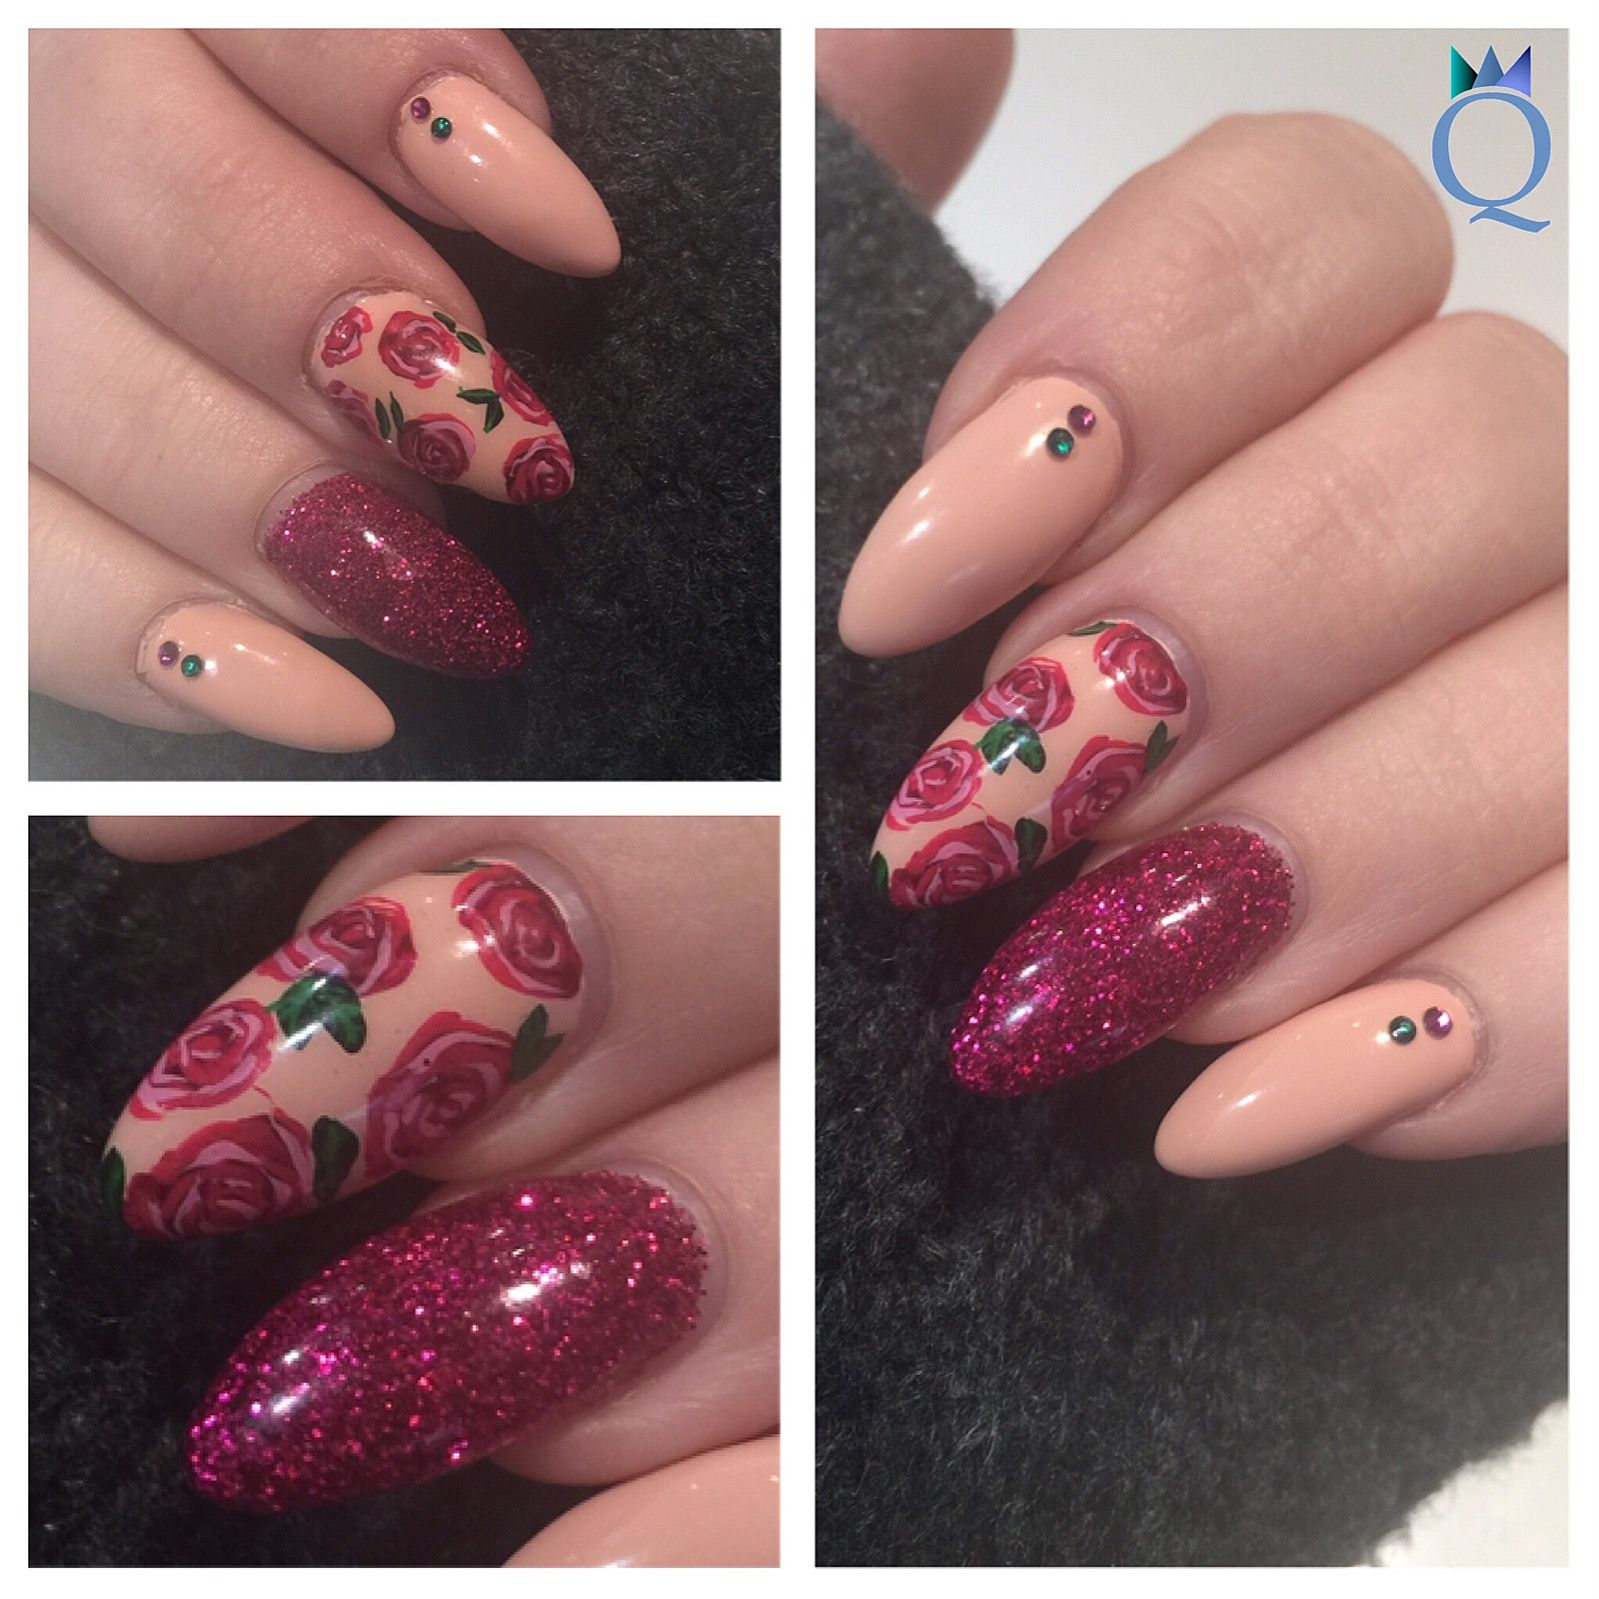 Meine Nägel nach 1 Woche / my nails after 1 week #almondnails #nails ...